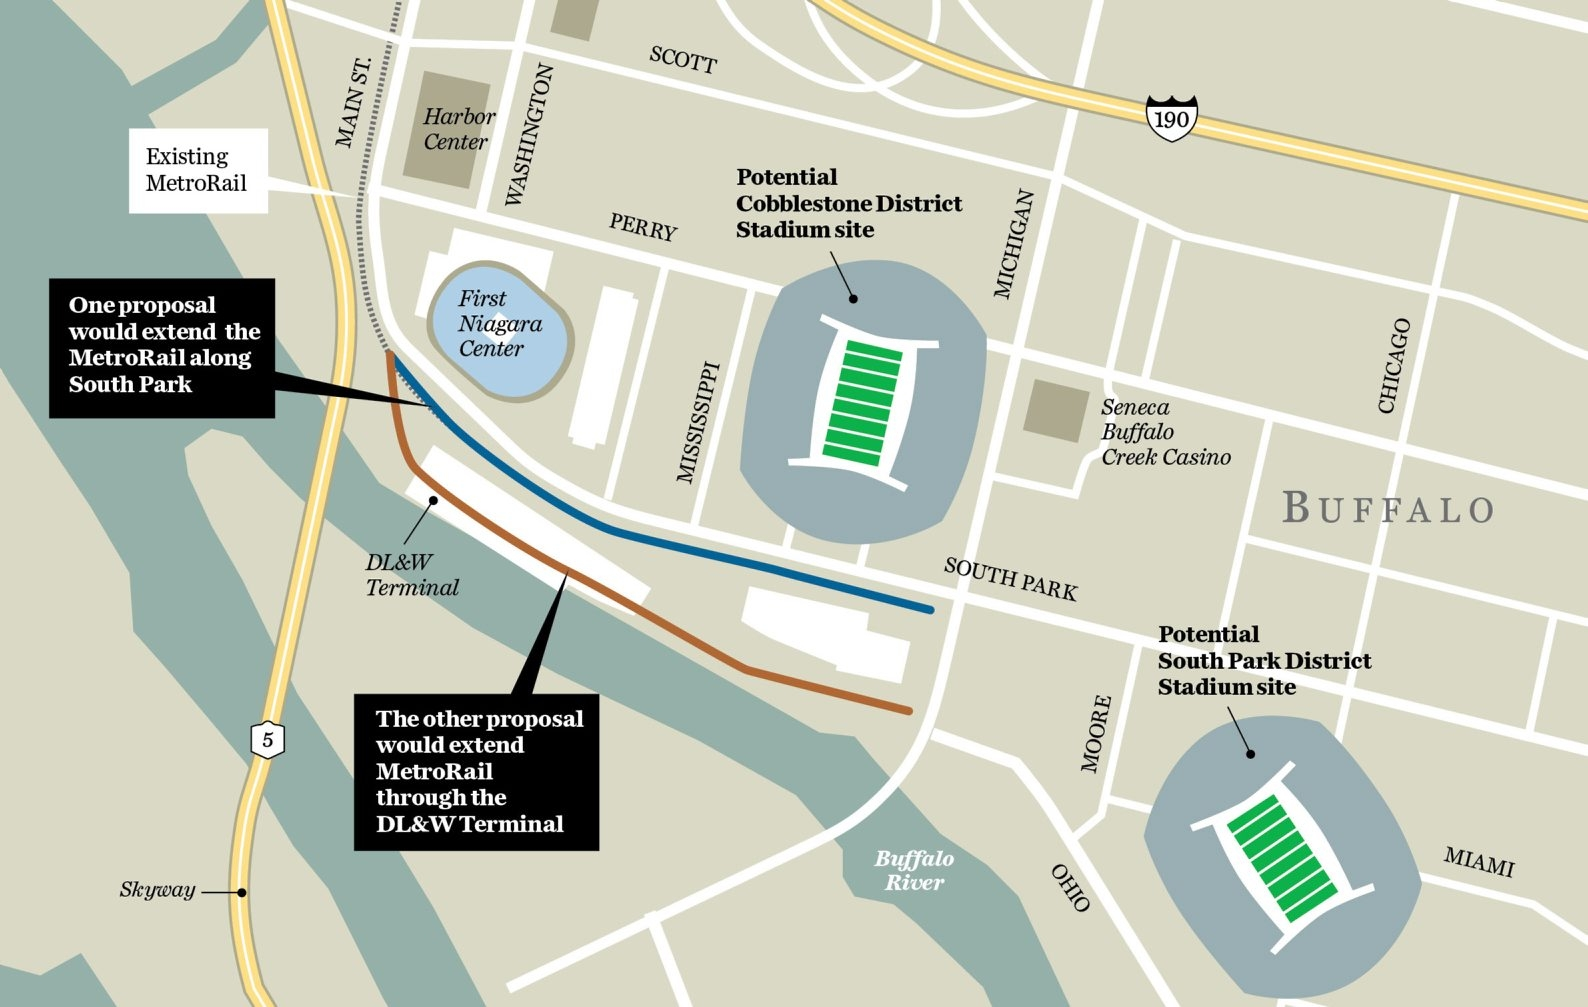 Graphic shows proposed extension of MetroRail